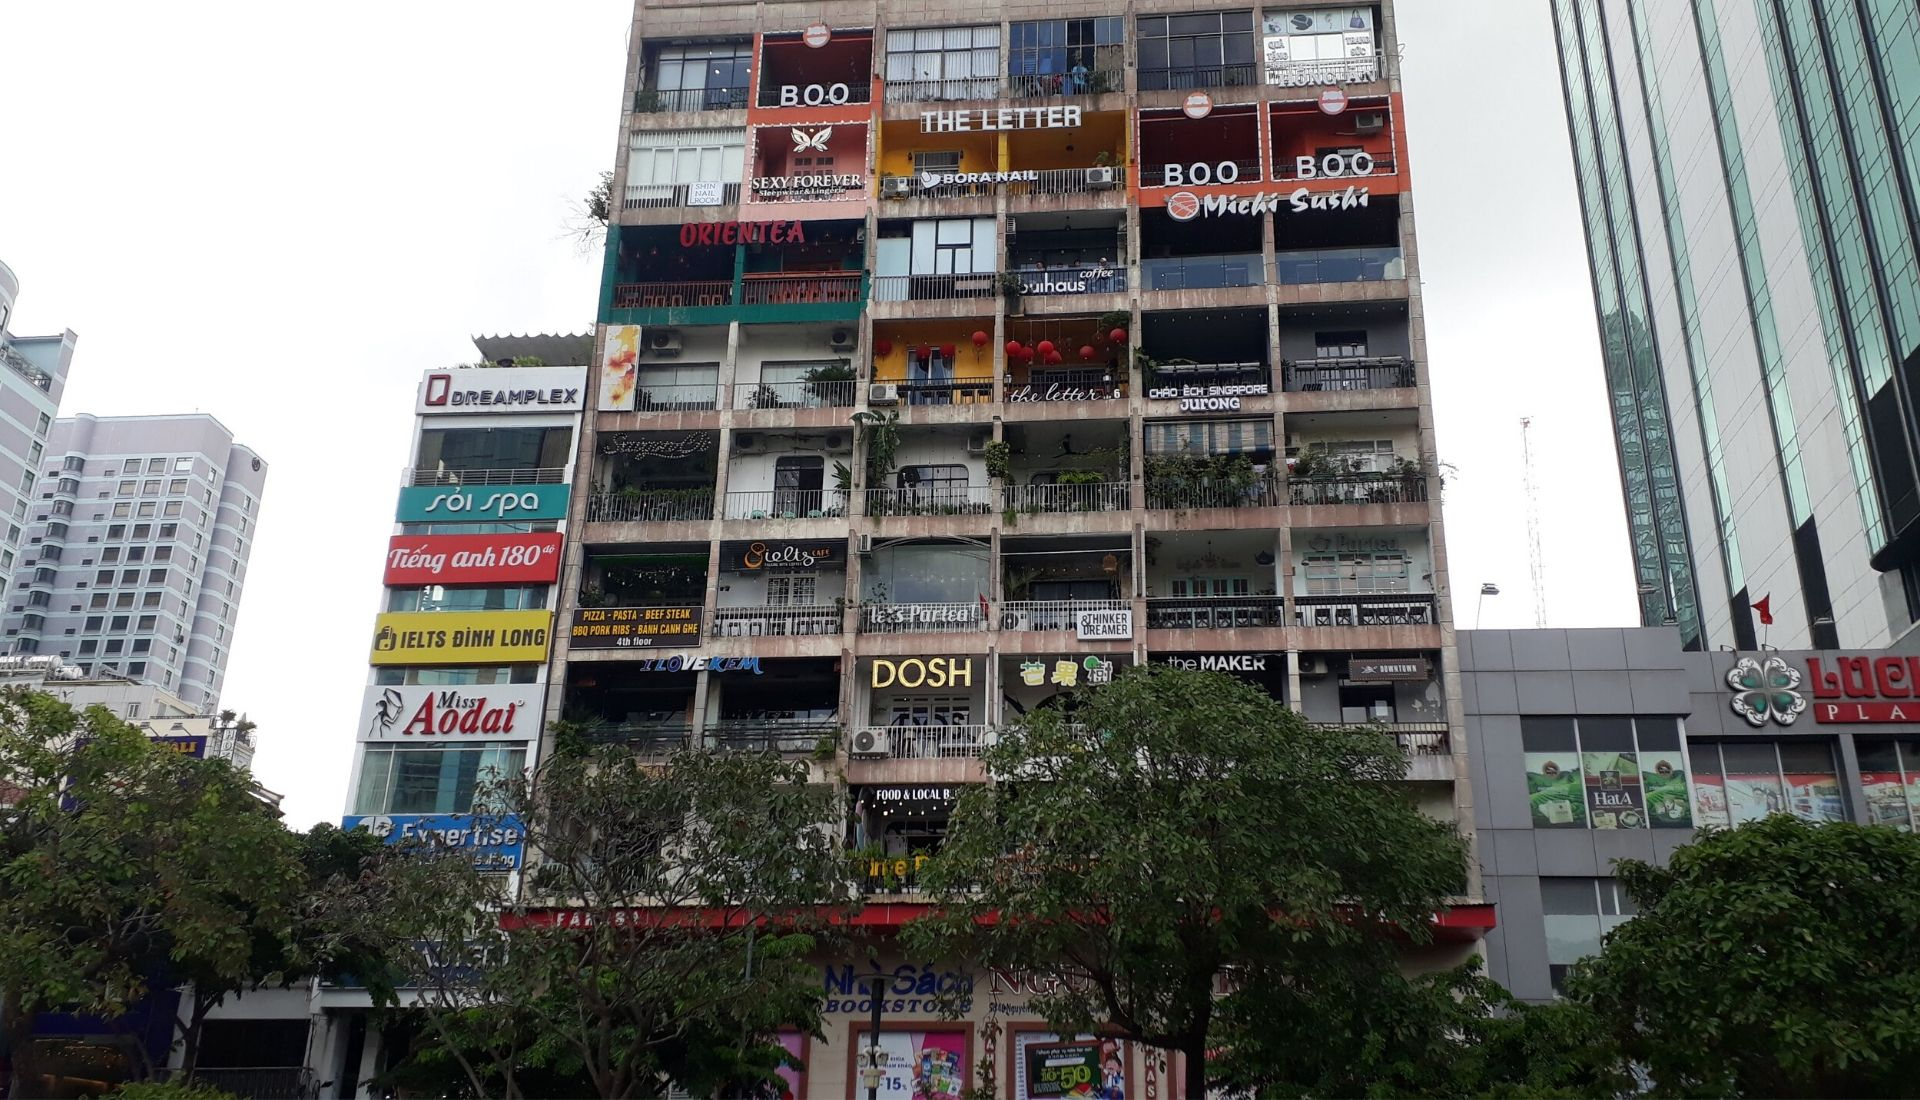 5 days in Saigon Cafe Apartment Ho Chi Minh - 9 floors of coffee shops and stores